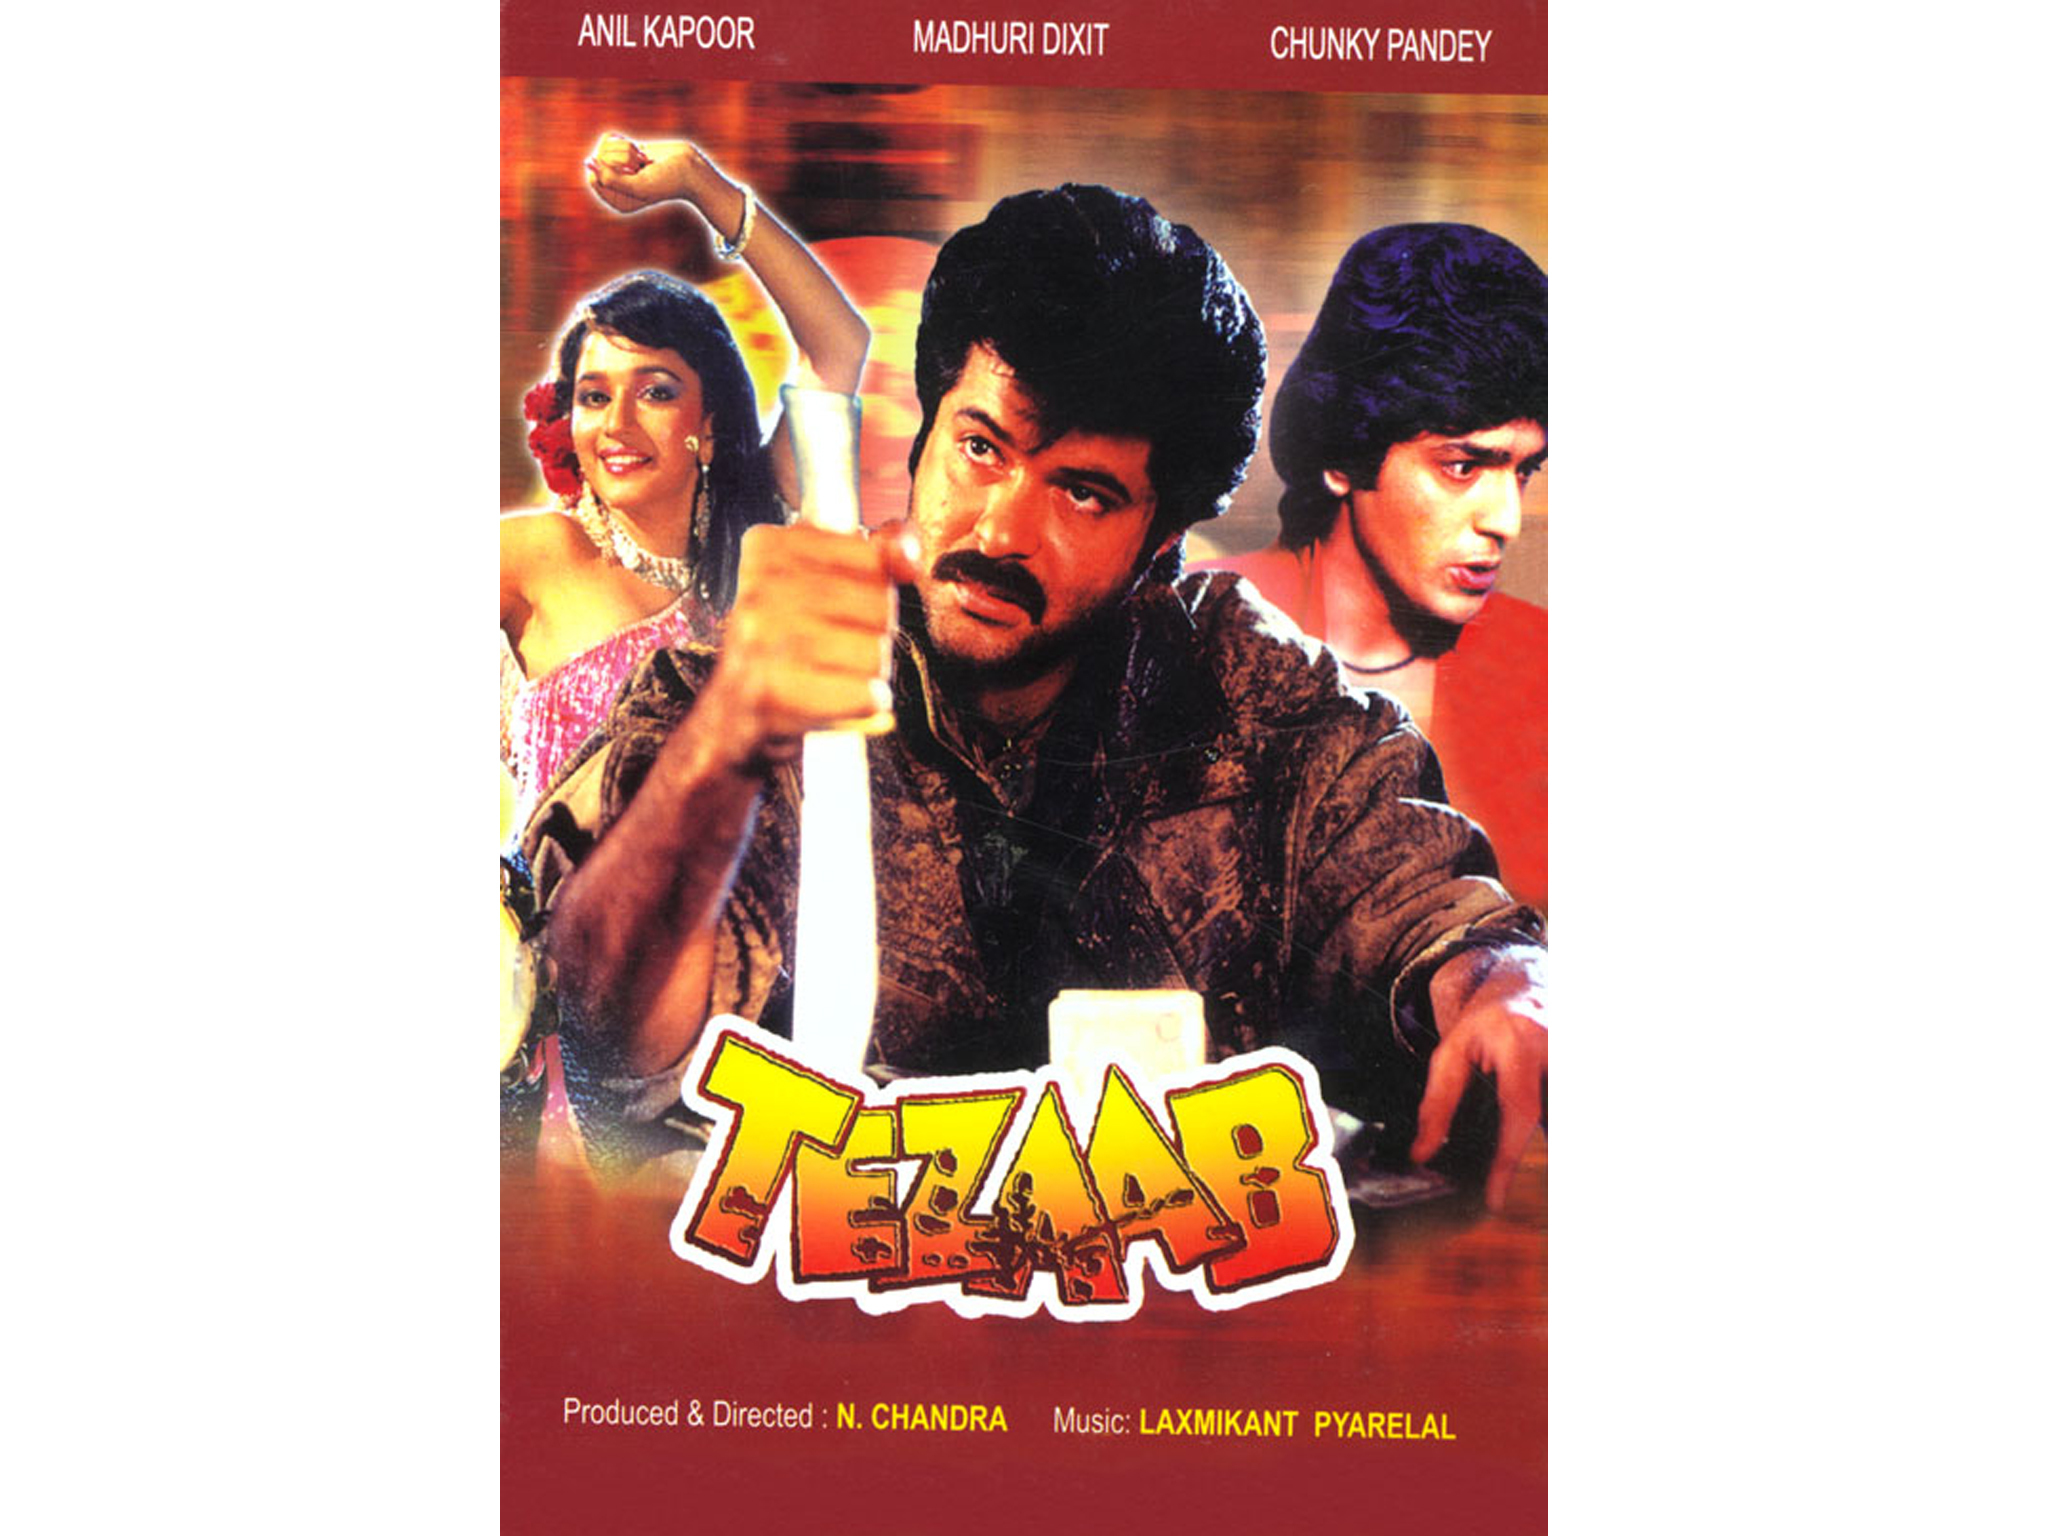 Bollywood movie: Tezaab